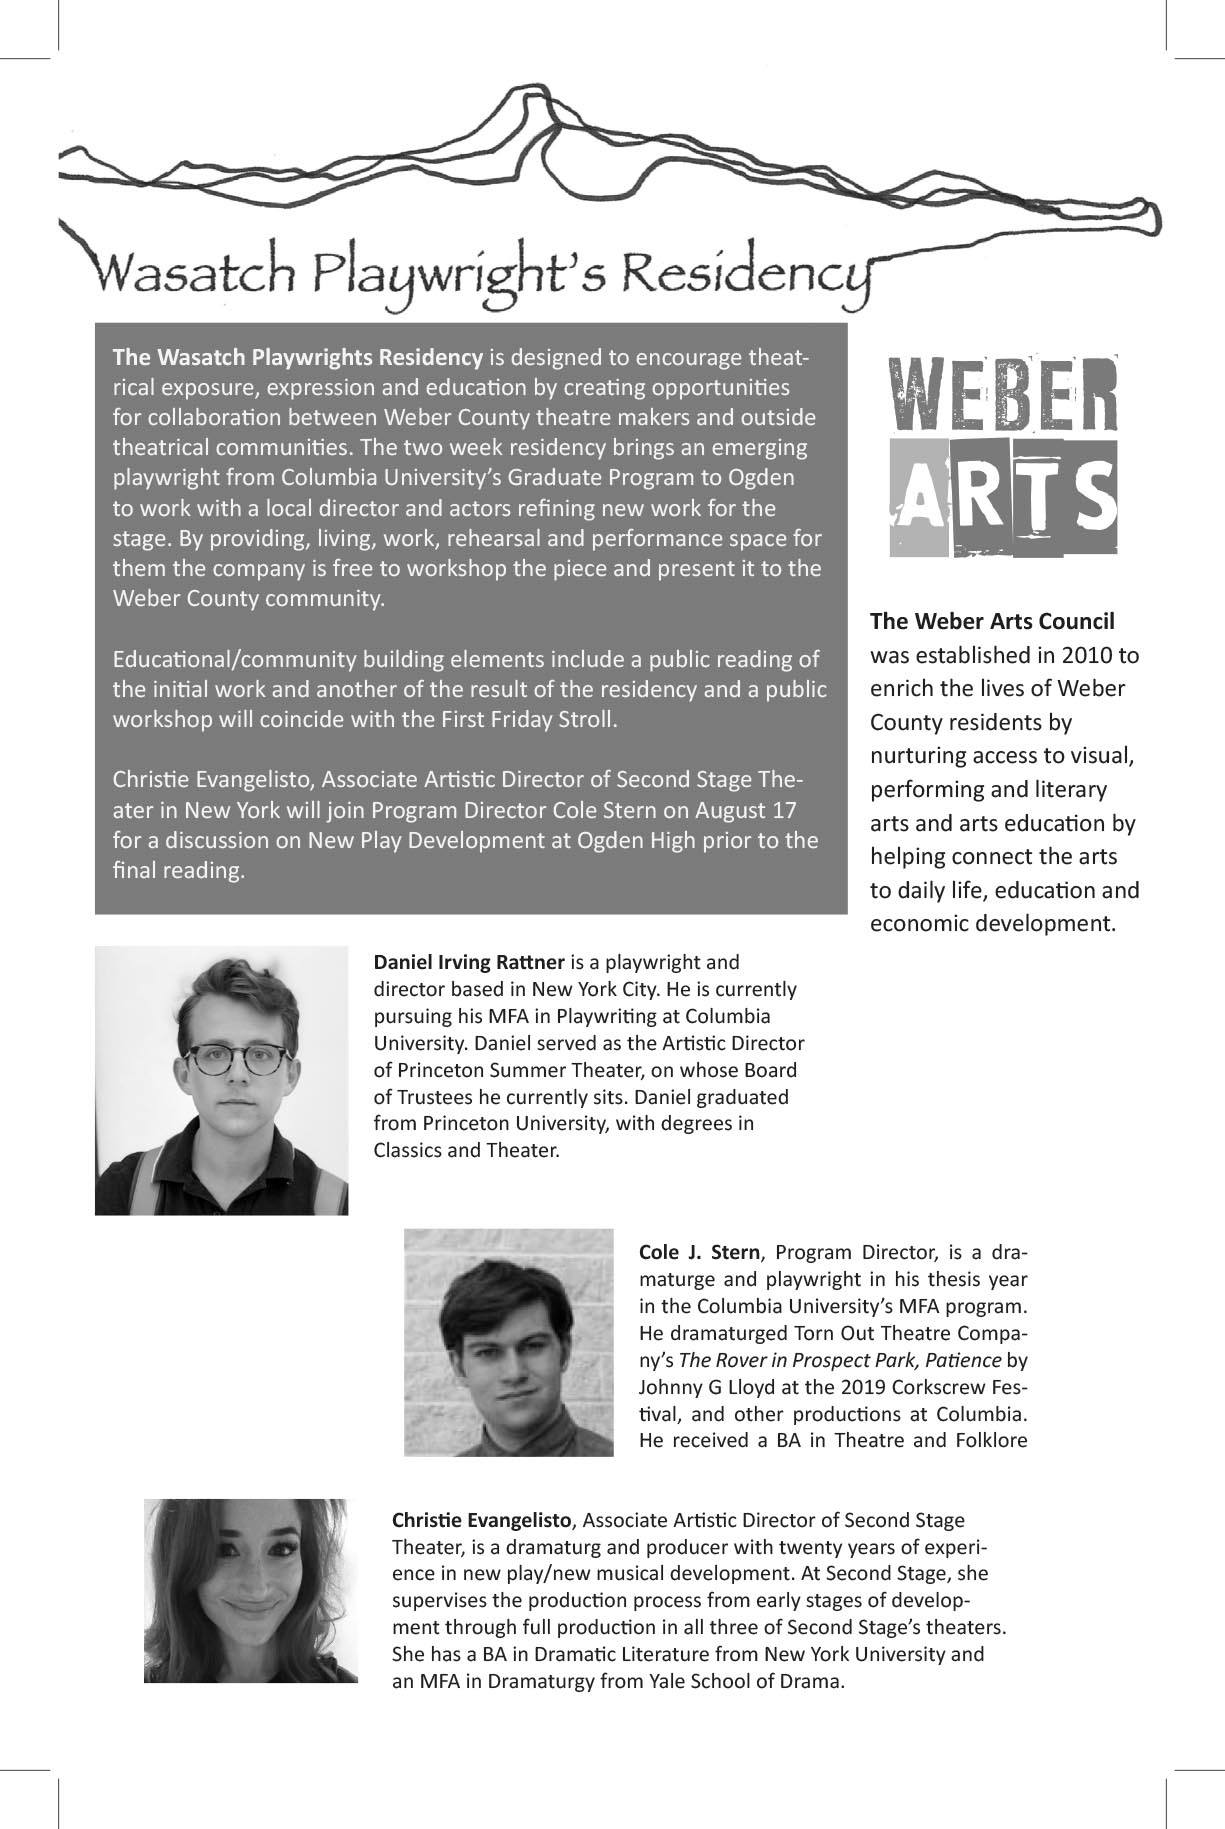 Wasatch Playwright Residency  (1).jpg